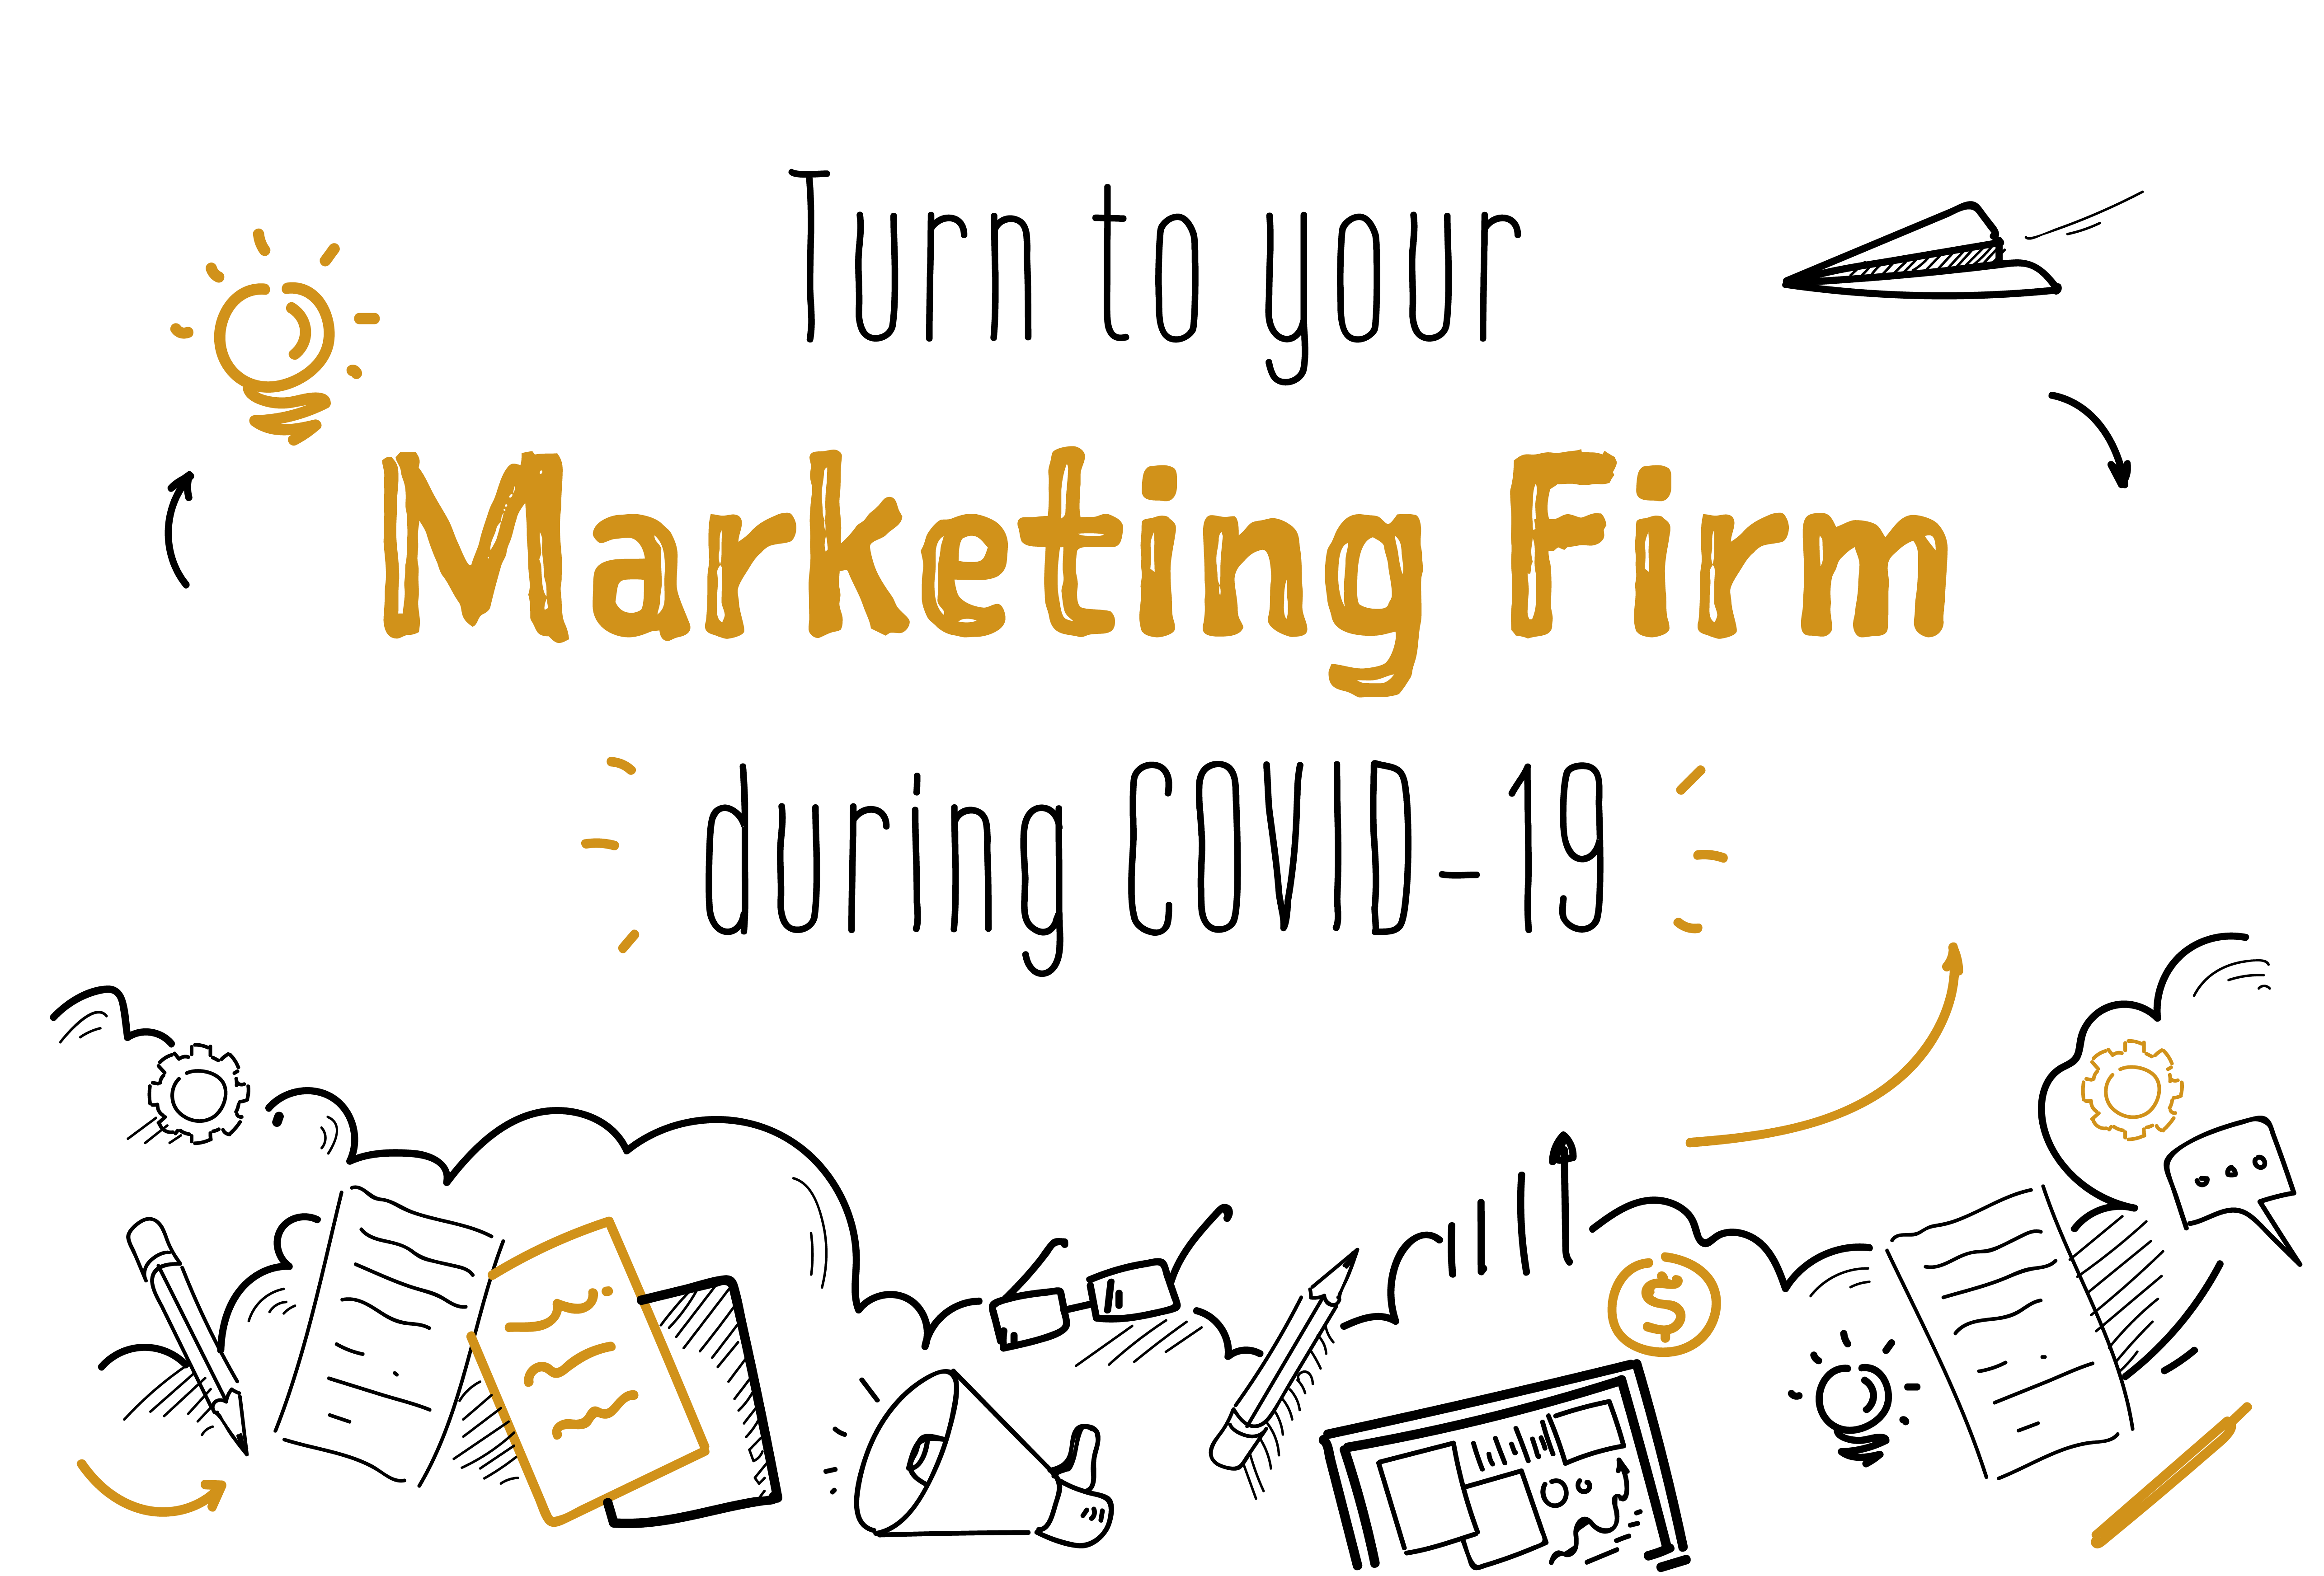 Turn to your marketing firm during COVID-19